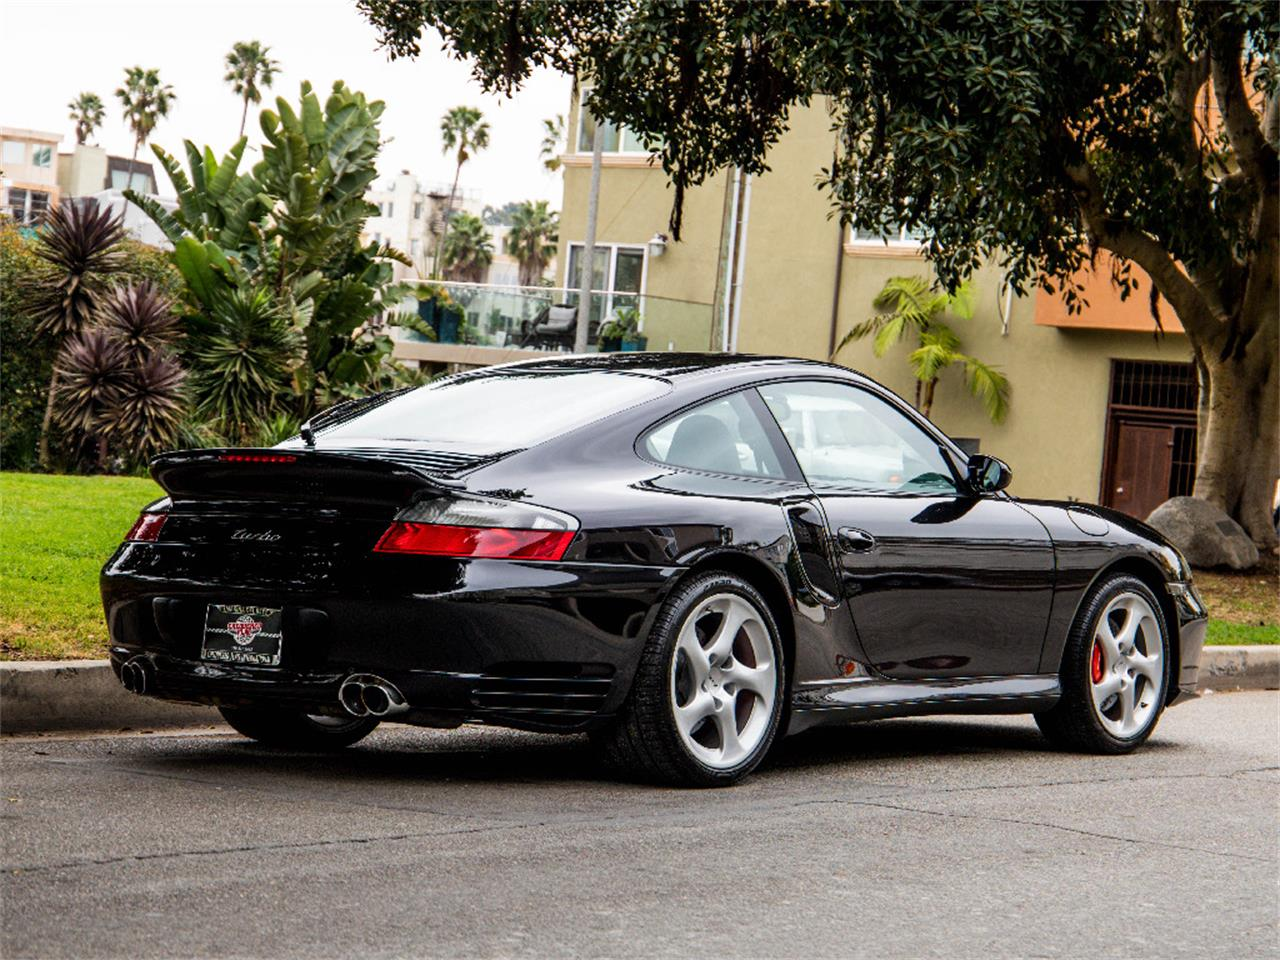 Large Picture of 2002 Porsche 911 Turbo located in California Offered by Chequered Flag International - NVVR